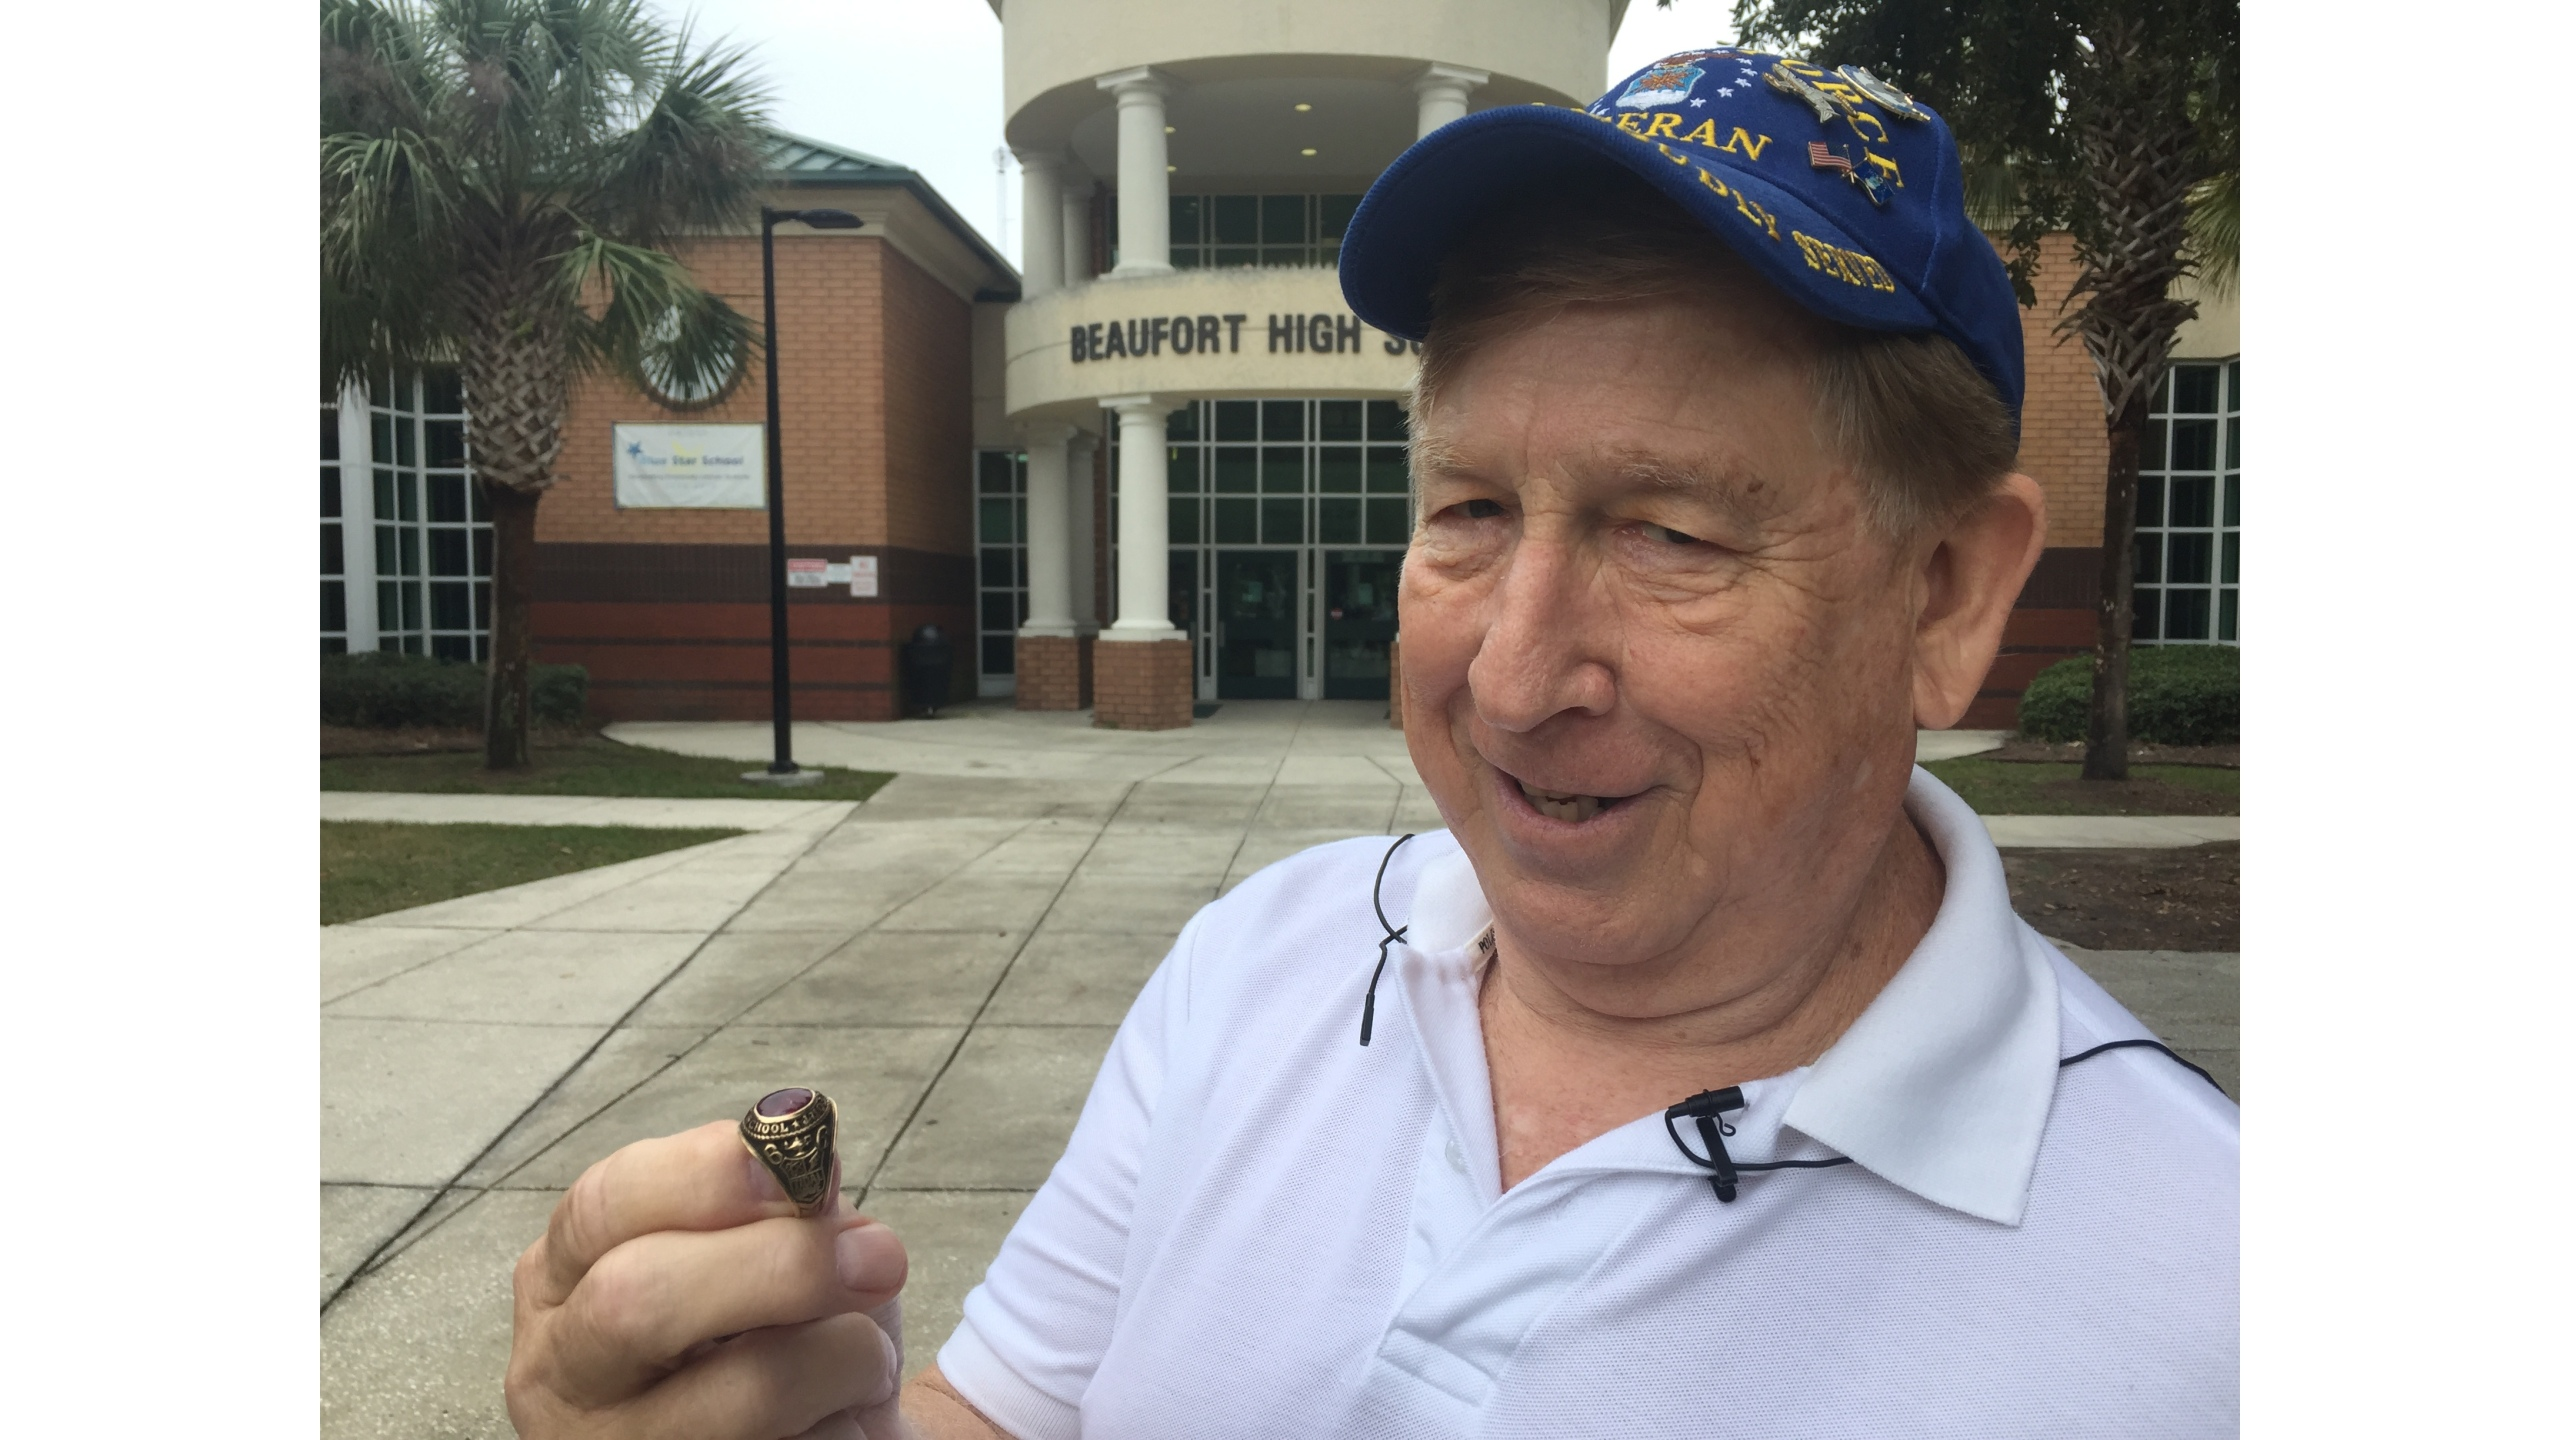 Vietnam Veteran reunited with high school ring 50 years later